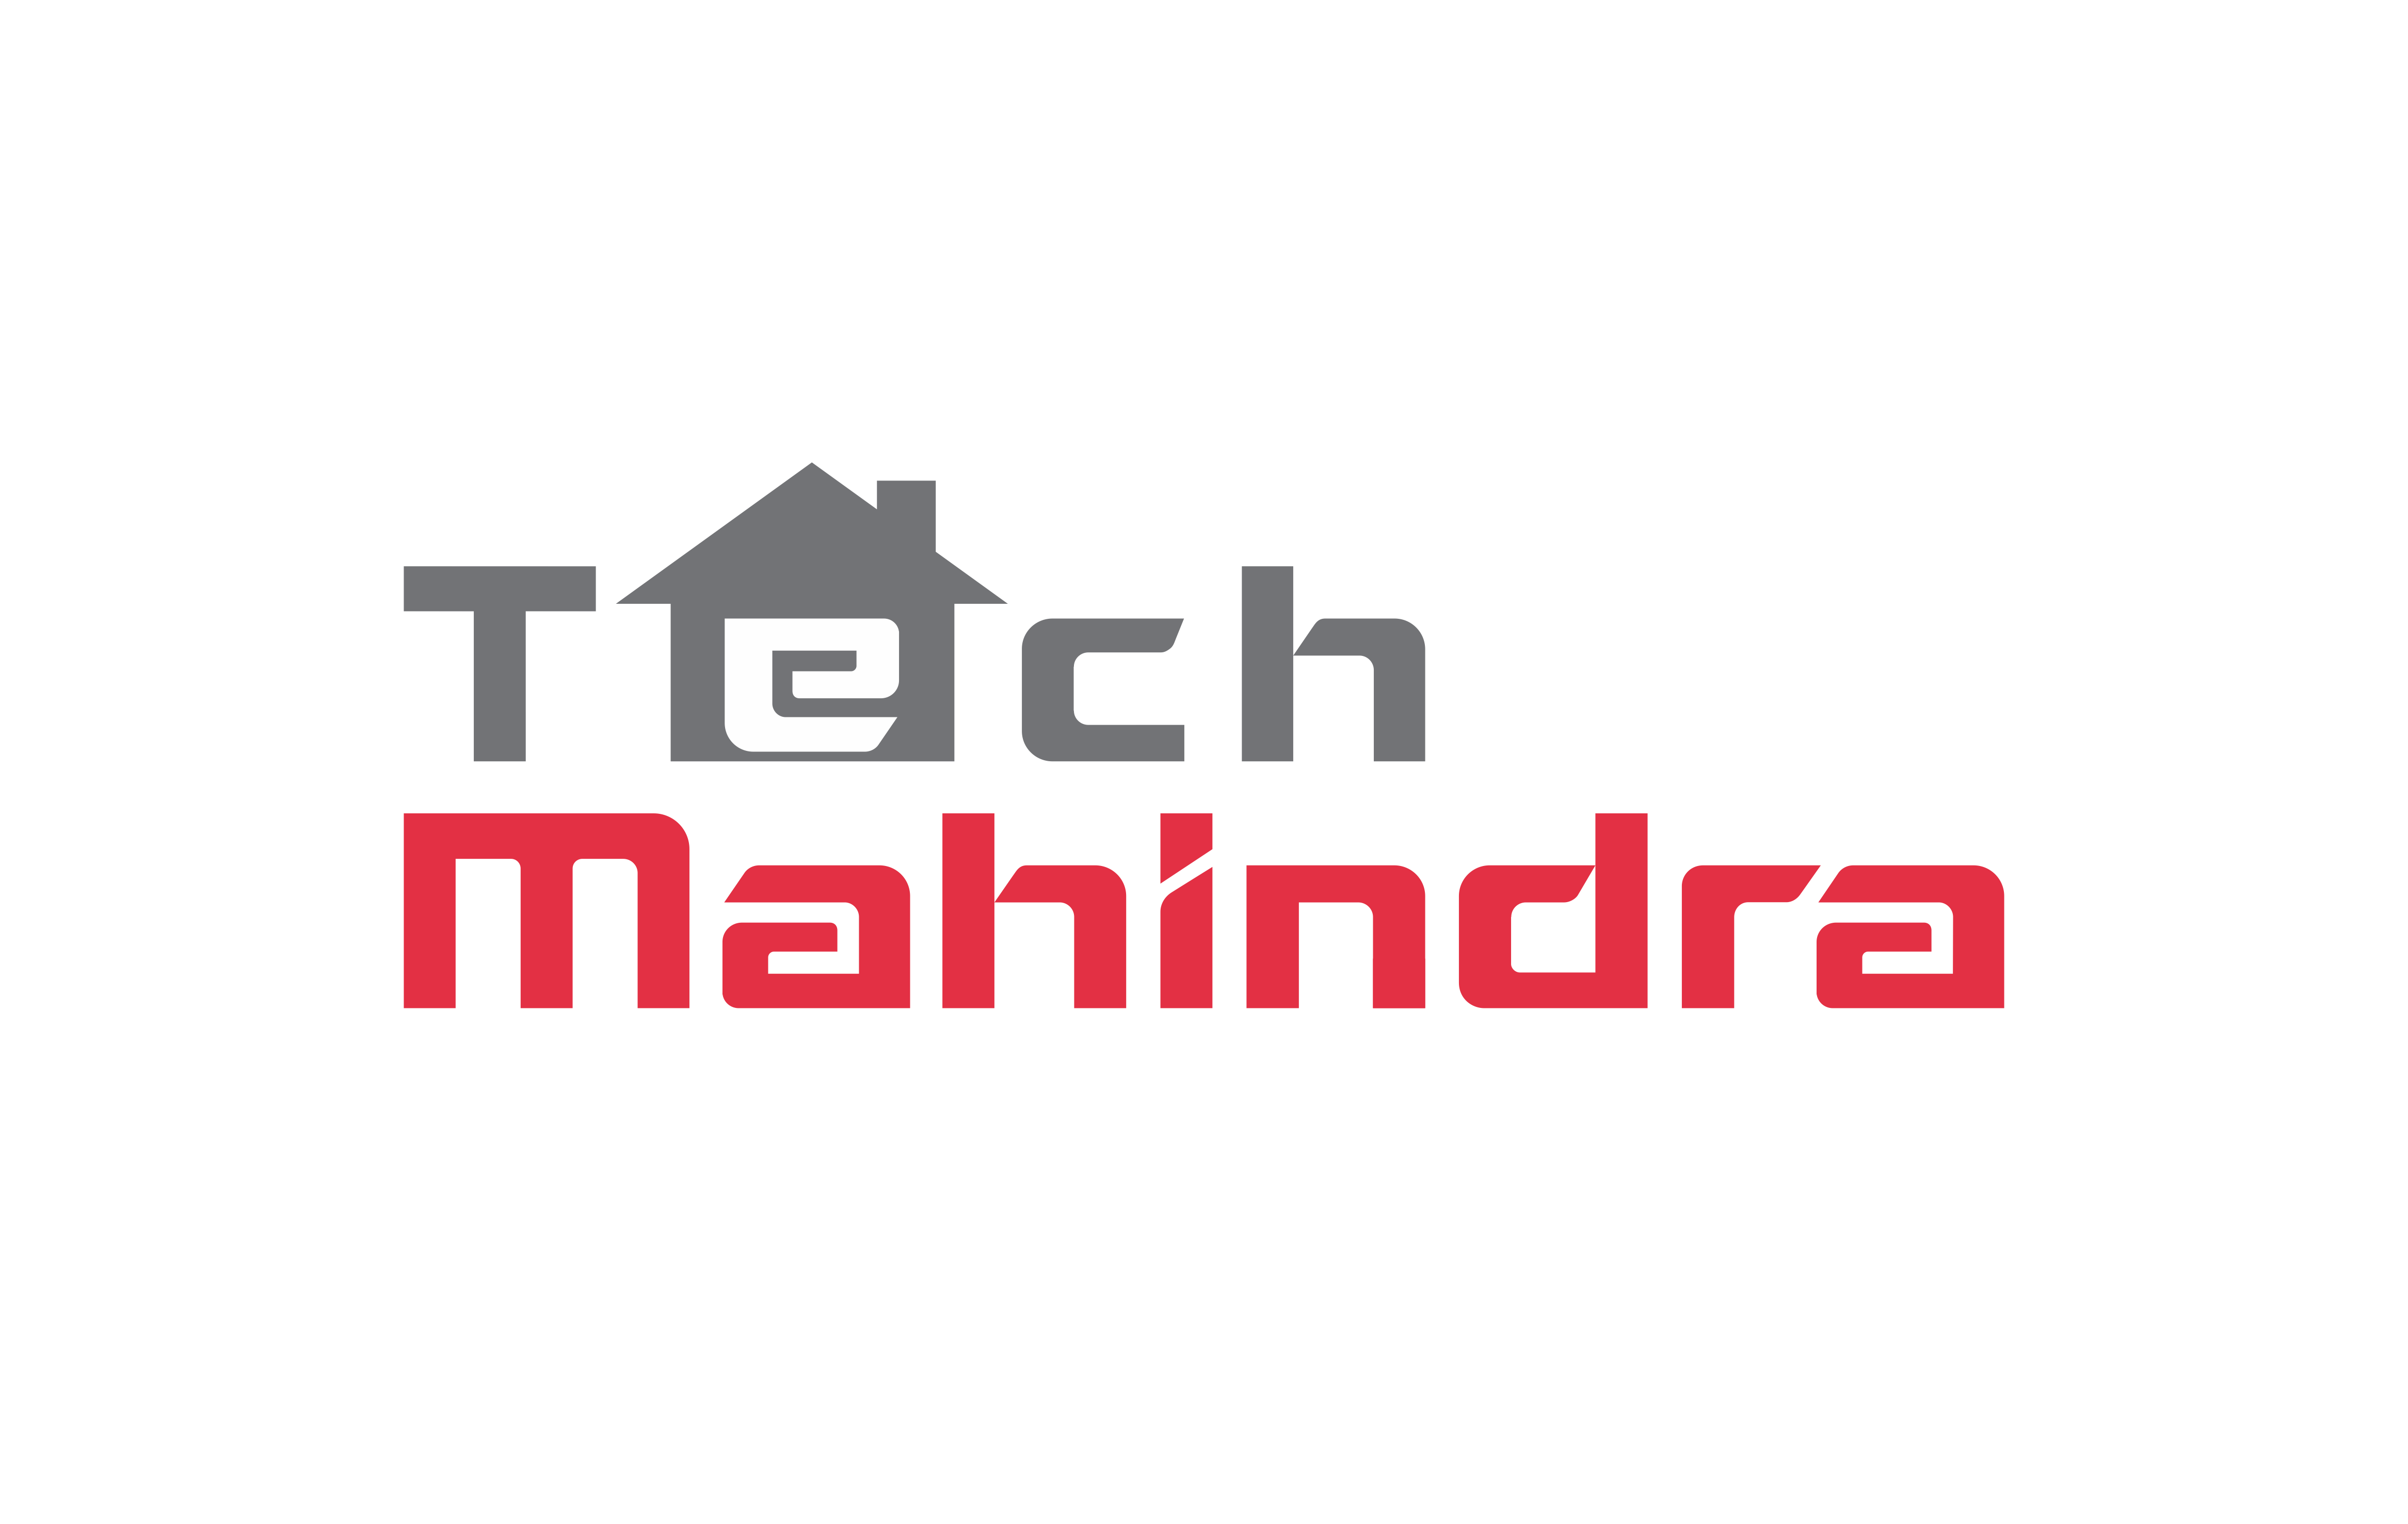 Tech Mahindra Announces Appointment of 'Wellness Officer'v